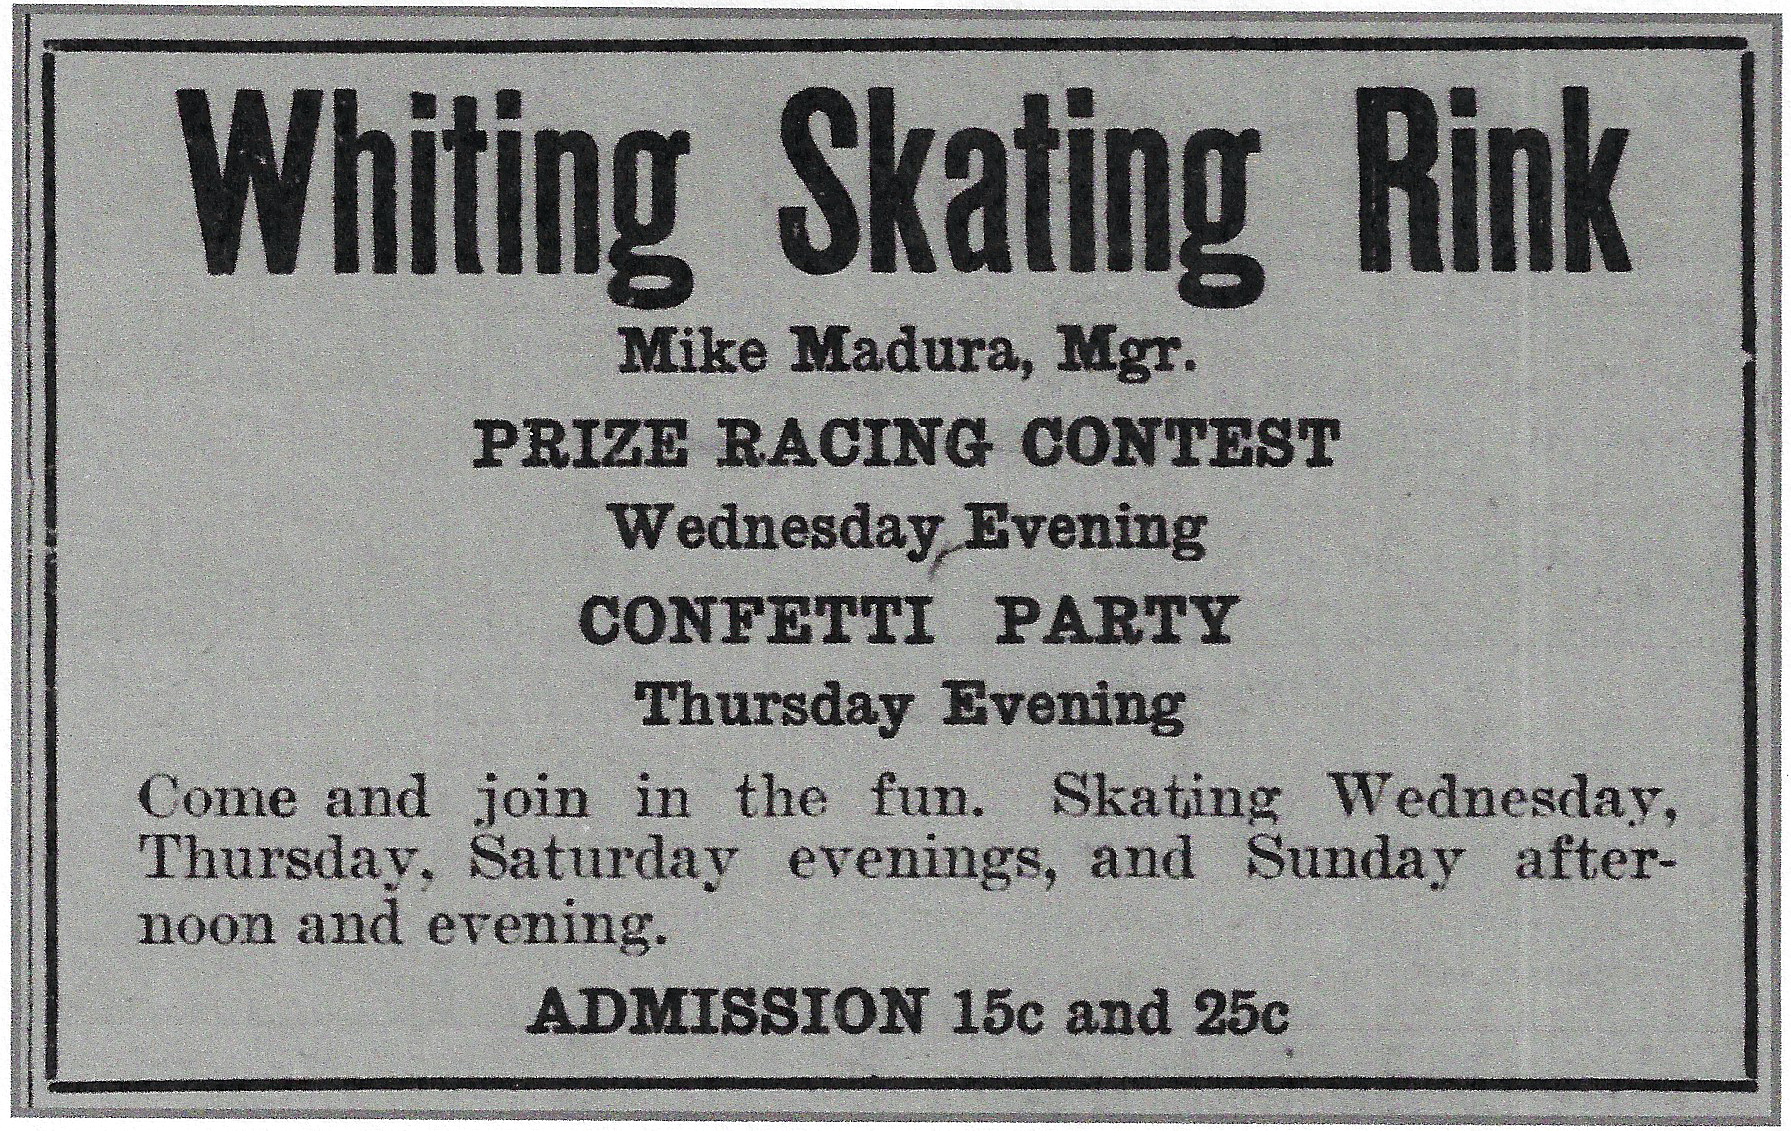 One of ice skating's main competitors in the early 1900s was roller skating. Mike Madura operated the very popular Whiting Skating Rink, which he promotes in this 1911 ad. It was a roller skating rink located at 1865 Indianapolis Boulevard. Roller skating had the advantage of being year-round, and in the winter it was easily the warmer option. But, in a time when most people didn't have a lot of extra cash to spend, ice skating was free.